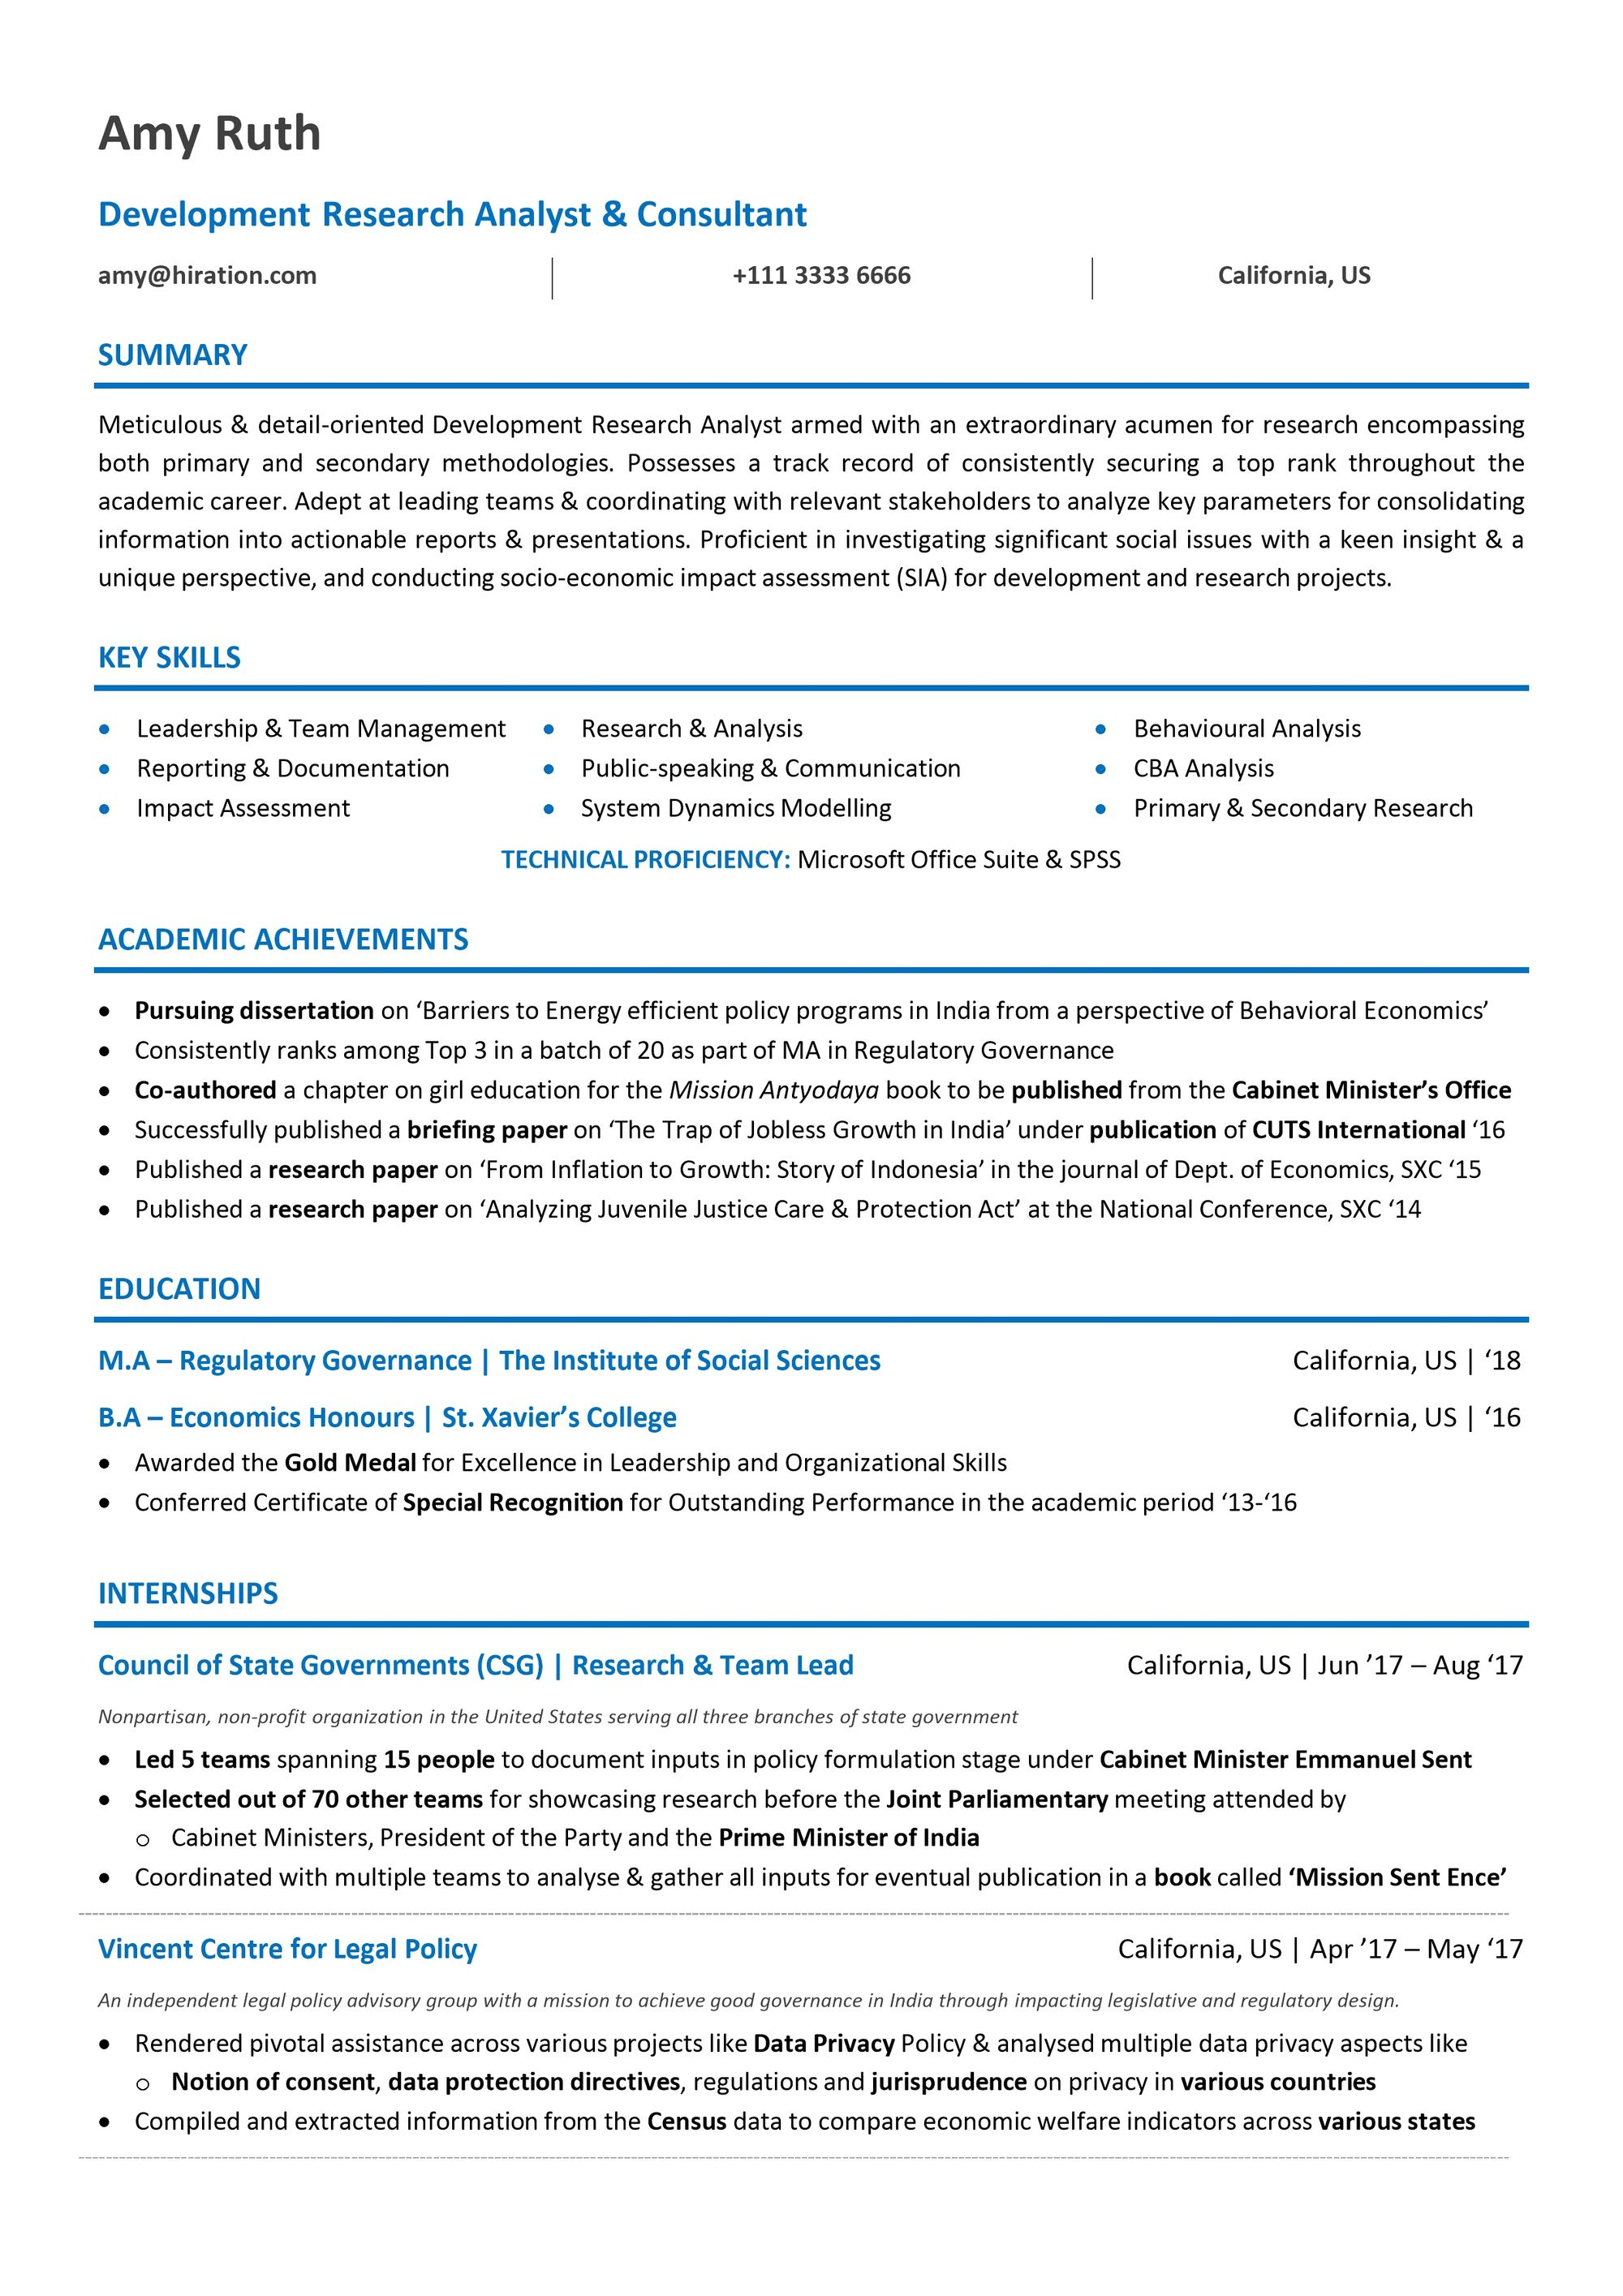 College Student Resume Samples Student Resume 2019 Guide To College Student Resume Sample